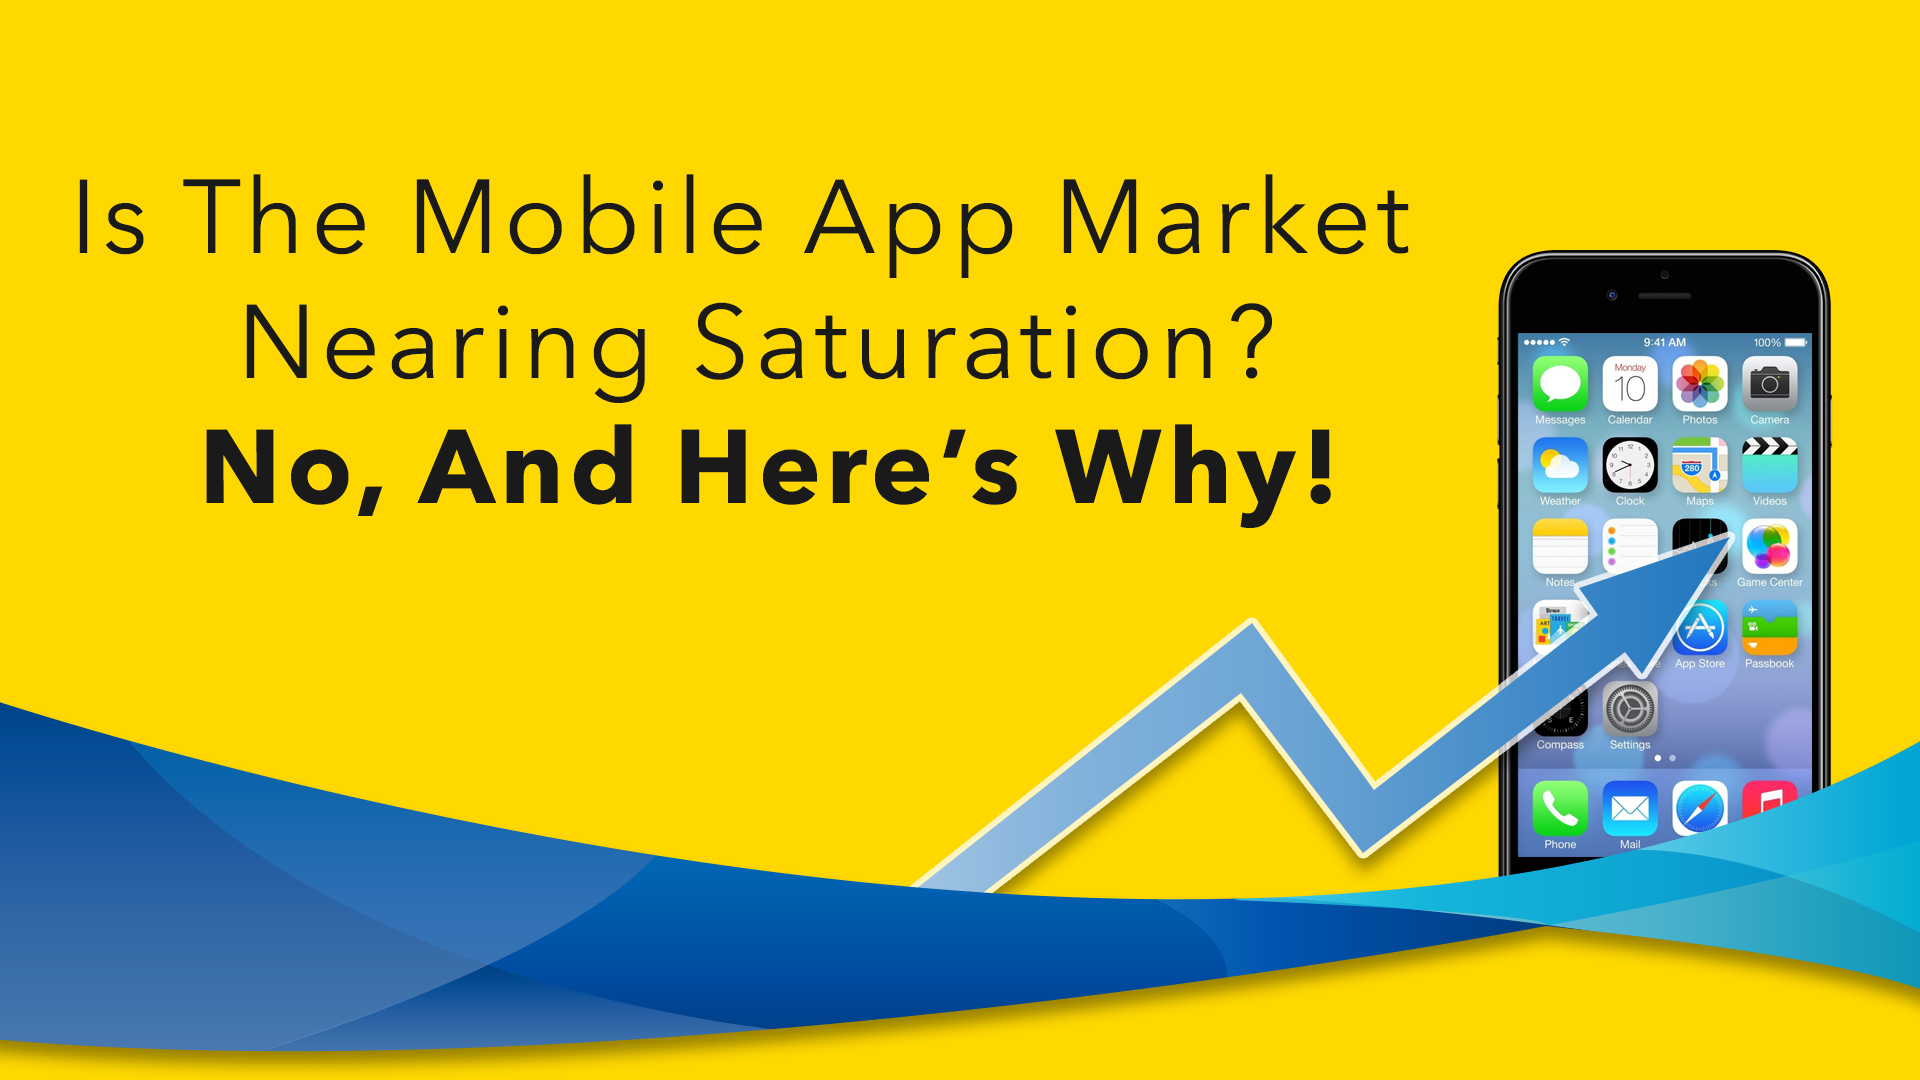 Te global app market is far from being fully saturated